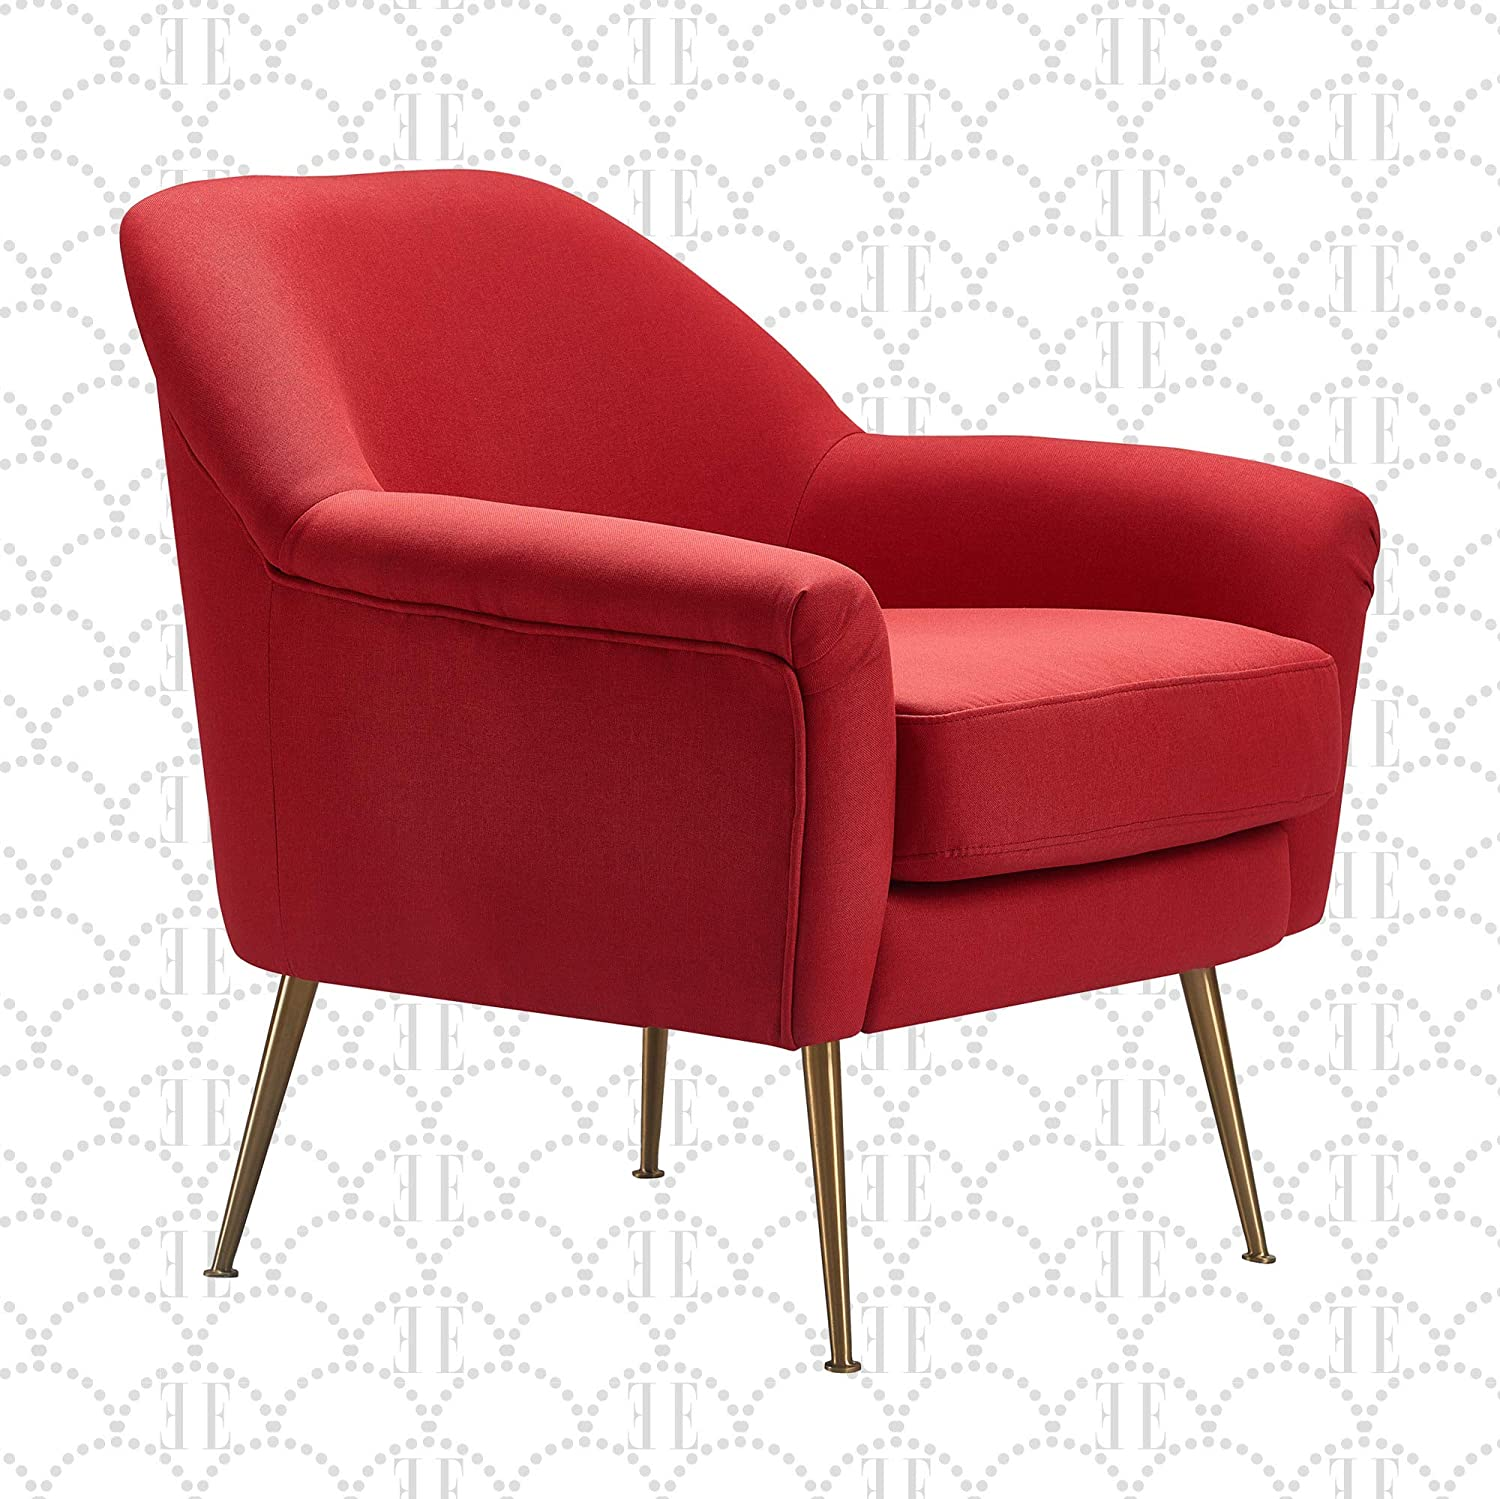 Elle Decor Ophelia Lounge, Mid-Century Modern Accent Chair with Brass Metal Legs, Fabric Upholstered Armchair for Living Room, Easy Assembly, Red